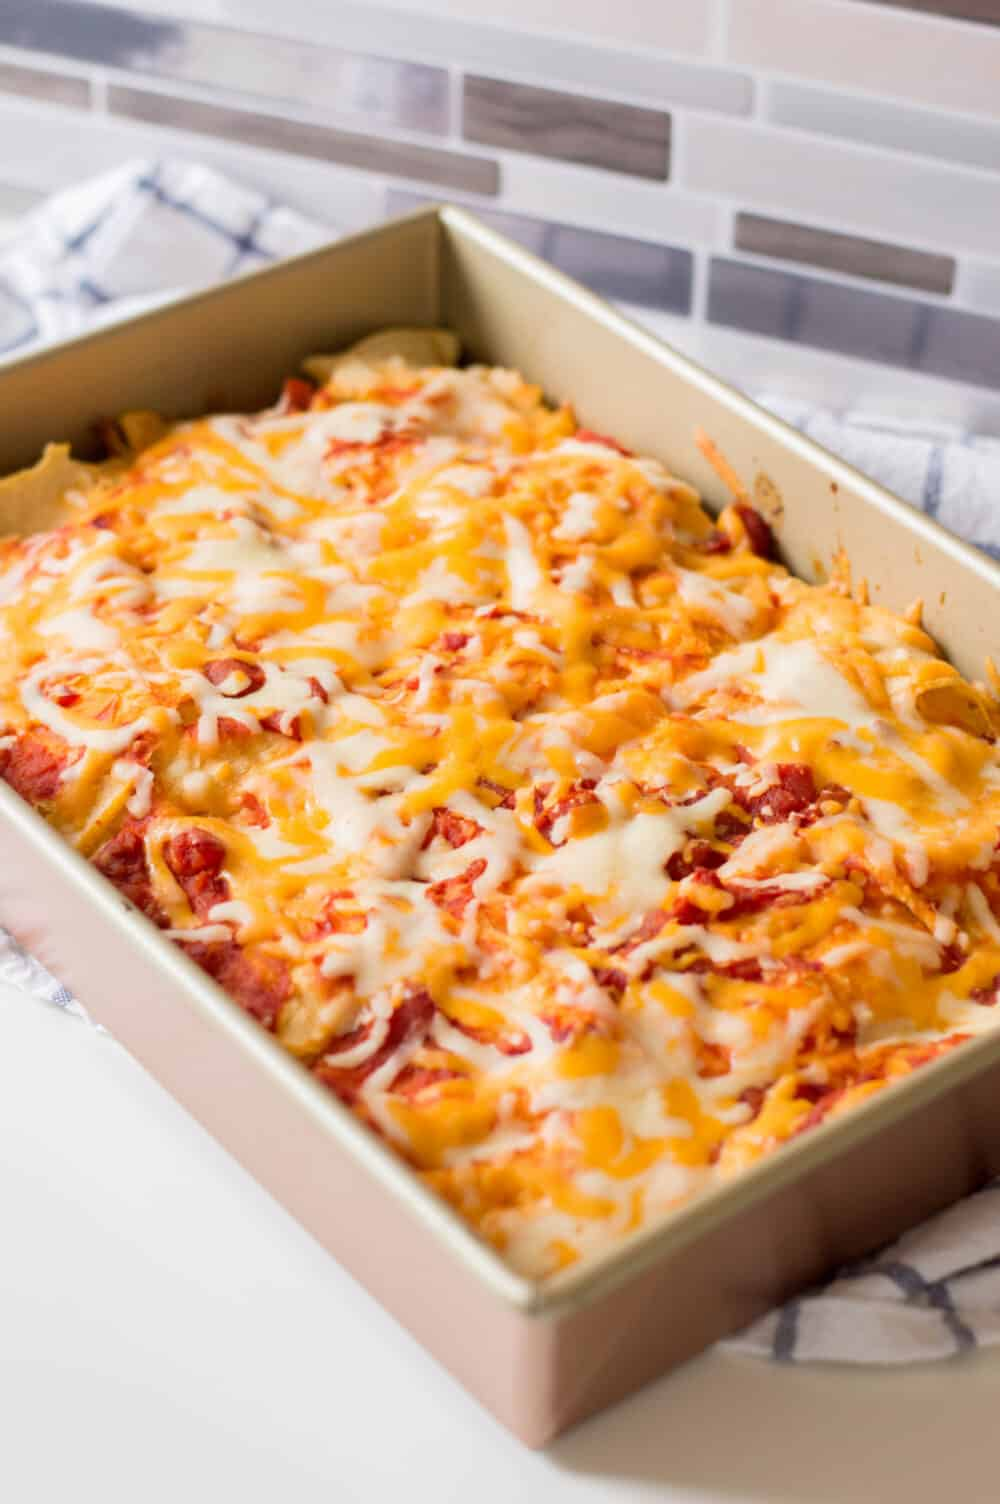 pan of chicken enchilada casserole fresh out of the oven